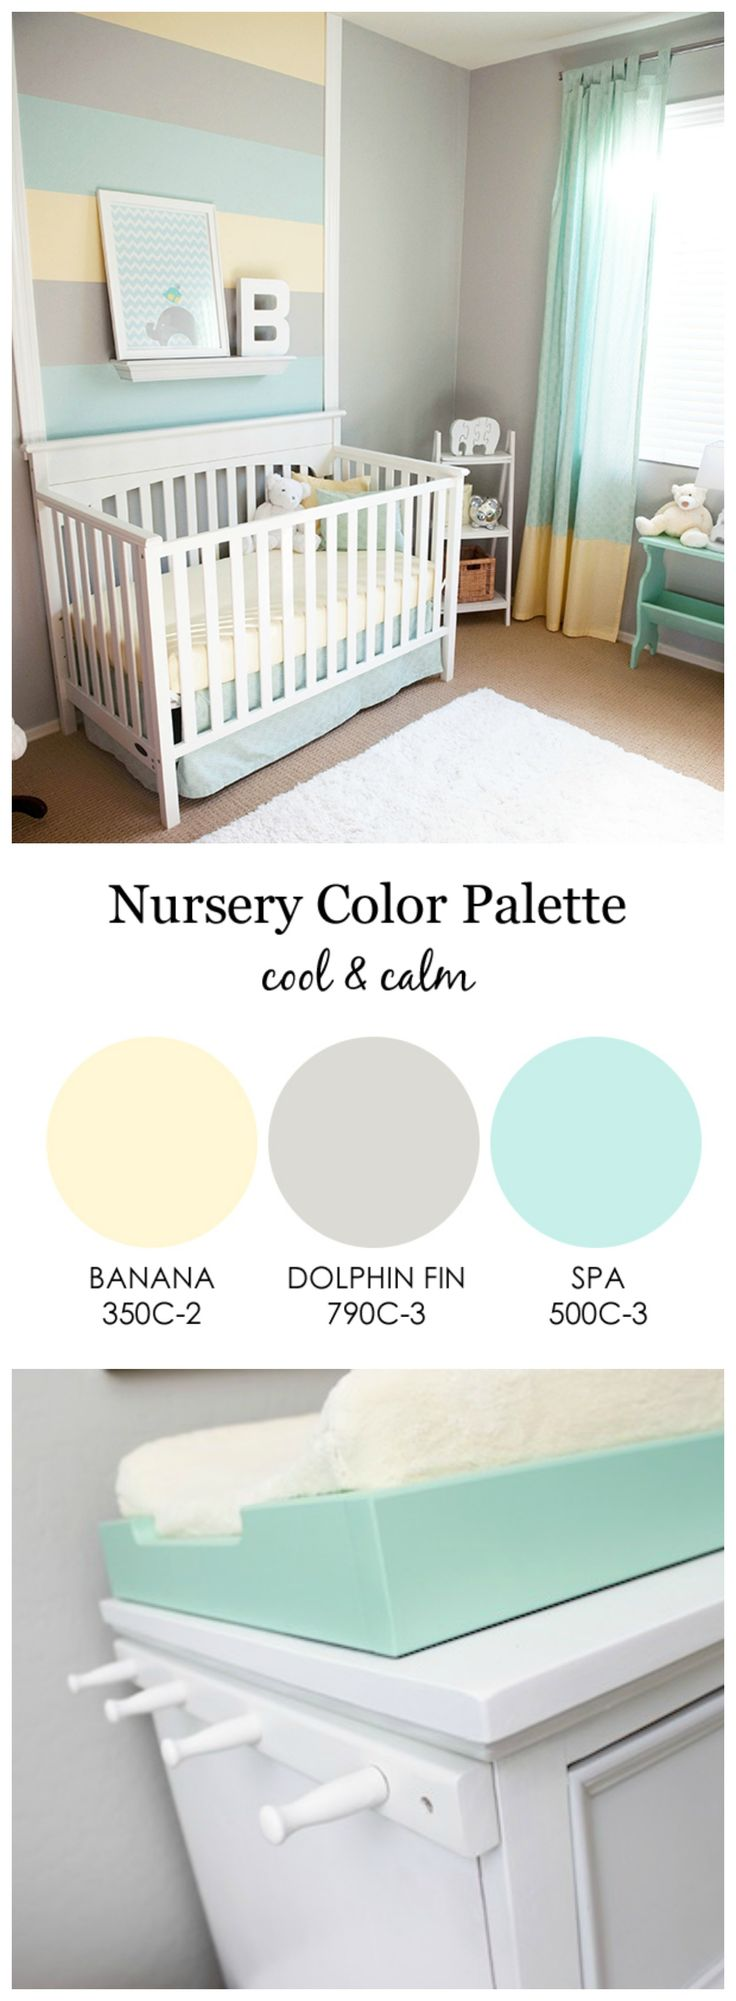 Gender Neutral Color Palette Stunning Best 25 Gender Neutral Nurseries Ideas On Pinterest  Baby Room . Review